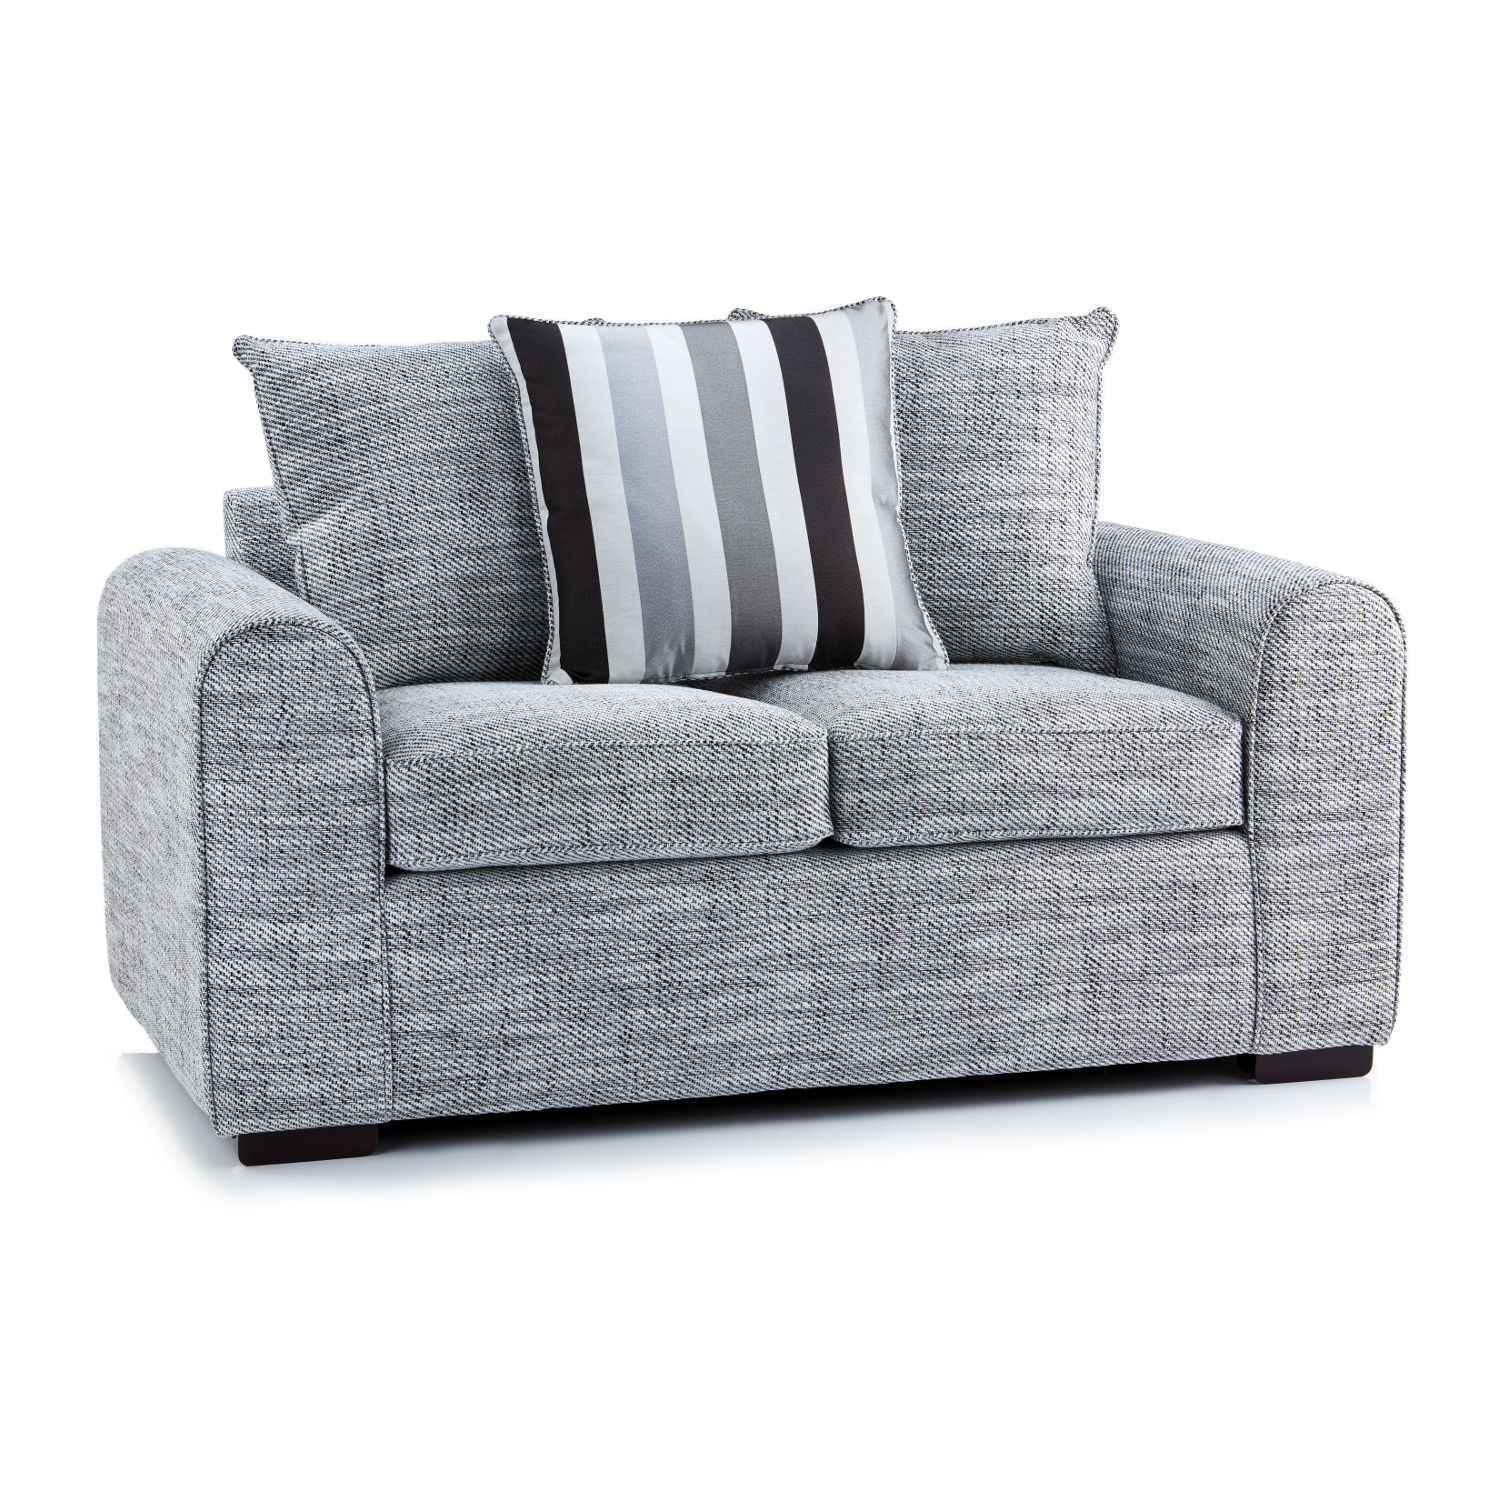 Kenya 2 Seater Fabric Sofa Just Sit On It Affordable Sofas